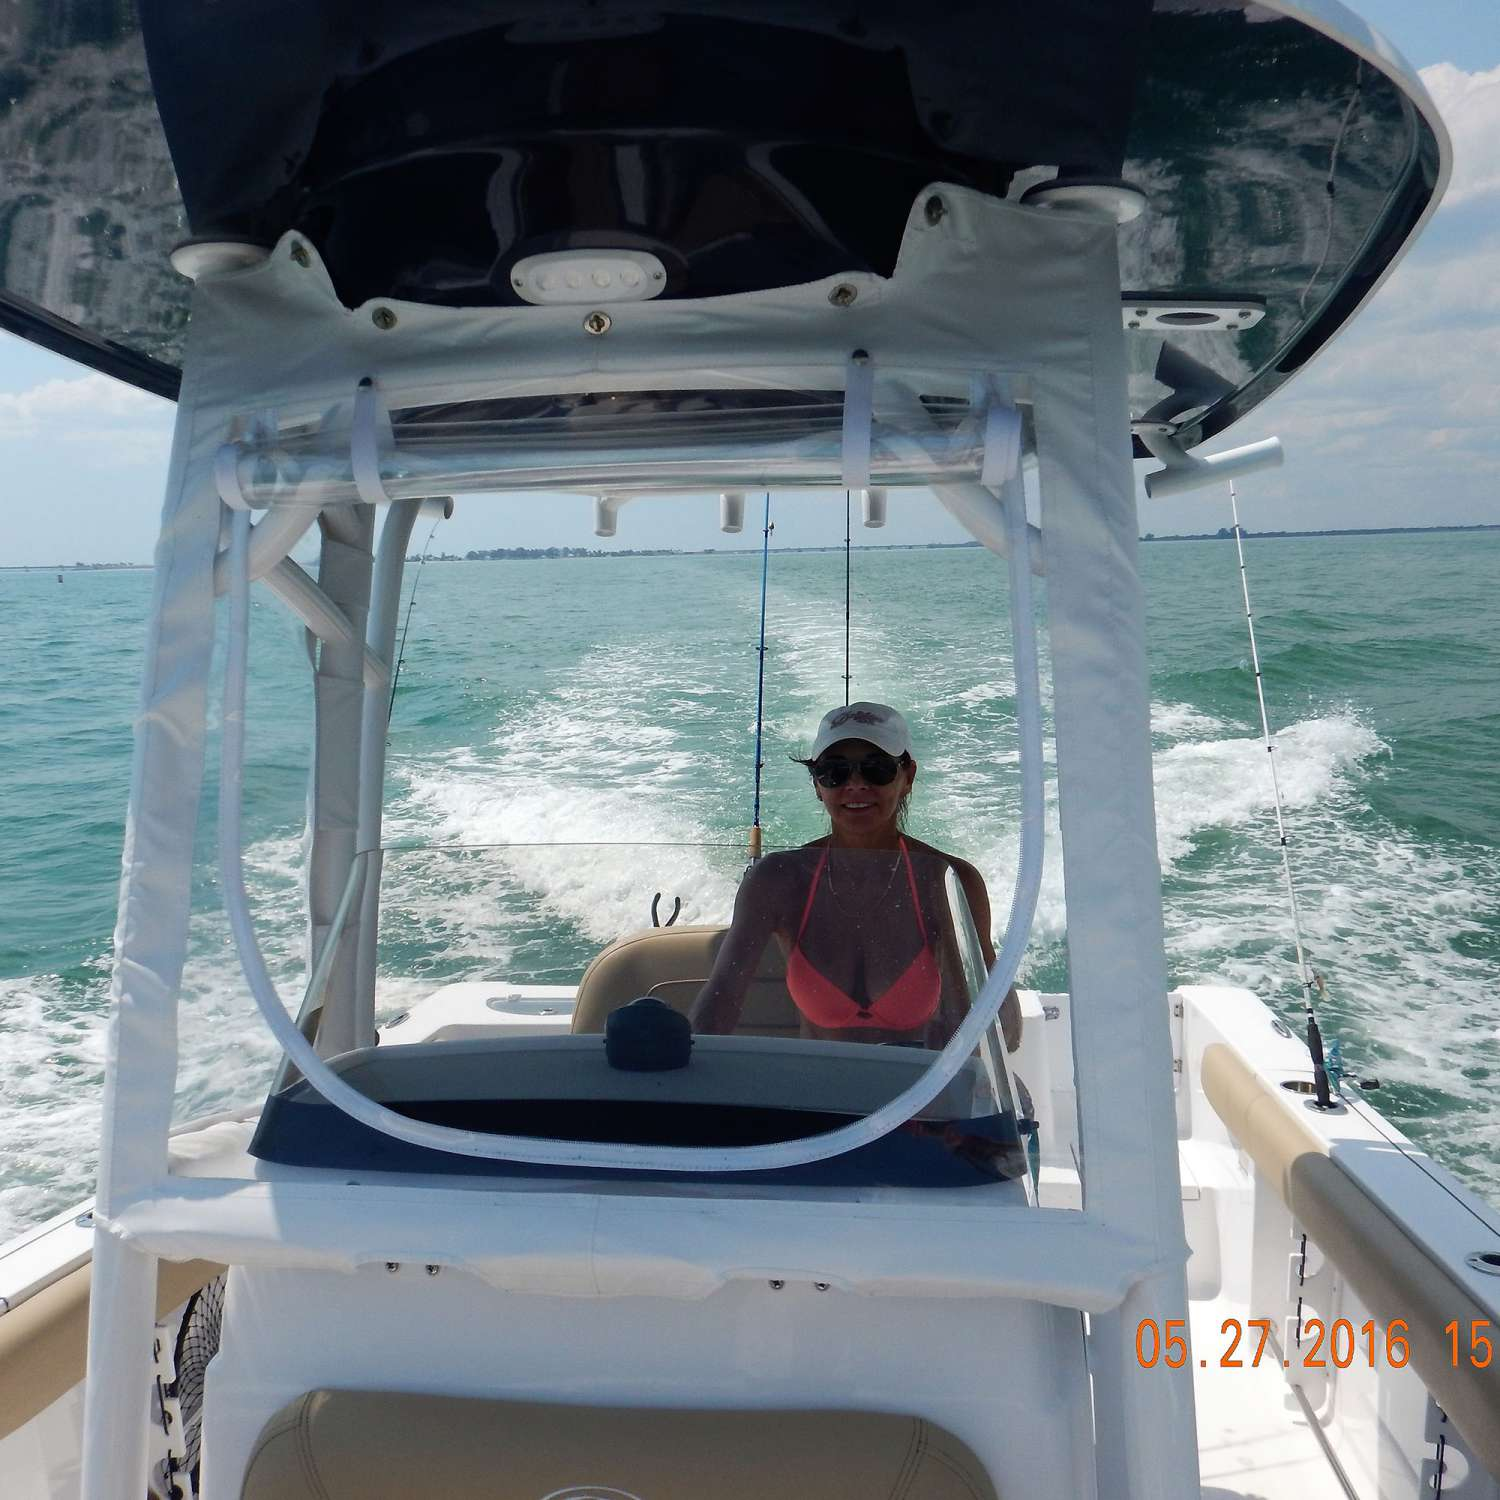 Title: First Mate Driver - On board their Sportsman Open 232 Center Console - Location: Cape Coral, Florida. Participating in the Photo Contest #SportsmanJune2016